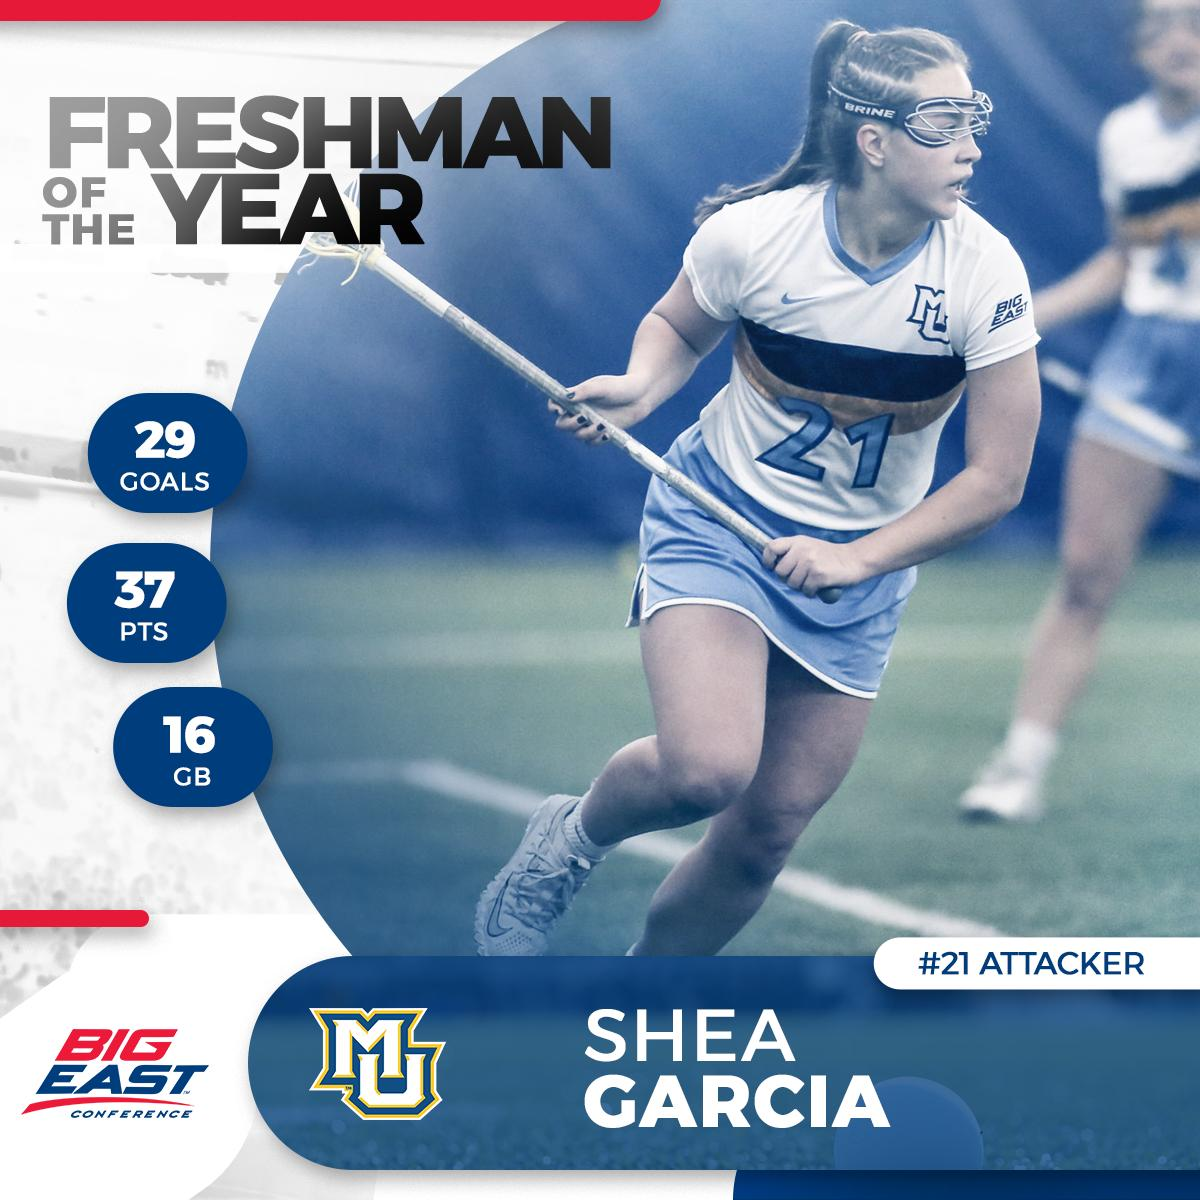 e4e8a1b3039 The Golden Eagles  Shea Garcia garners Freshman of the Year after tallying  37 points off 29 goals and 8 assists.pic.twitter.com FmWIGdaf8w